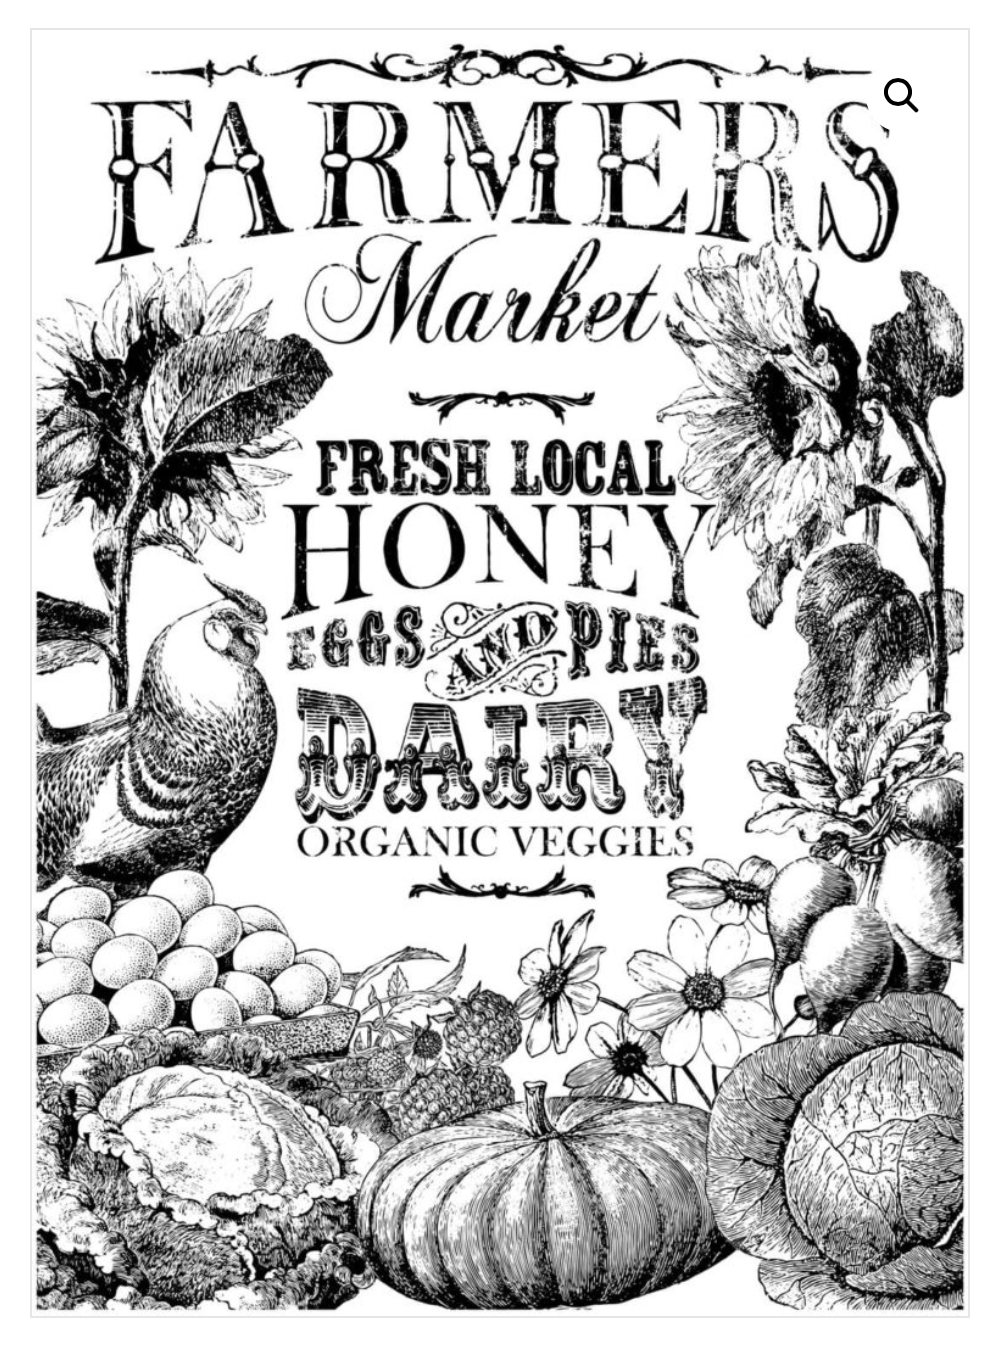 Farmer's Market Transfer Transfers - Iron Orchid Designs Transfers available at Lemon Tree Corners